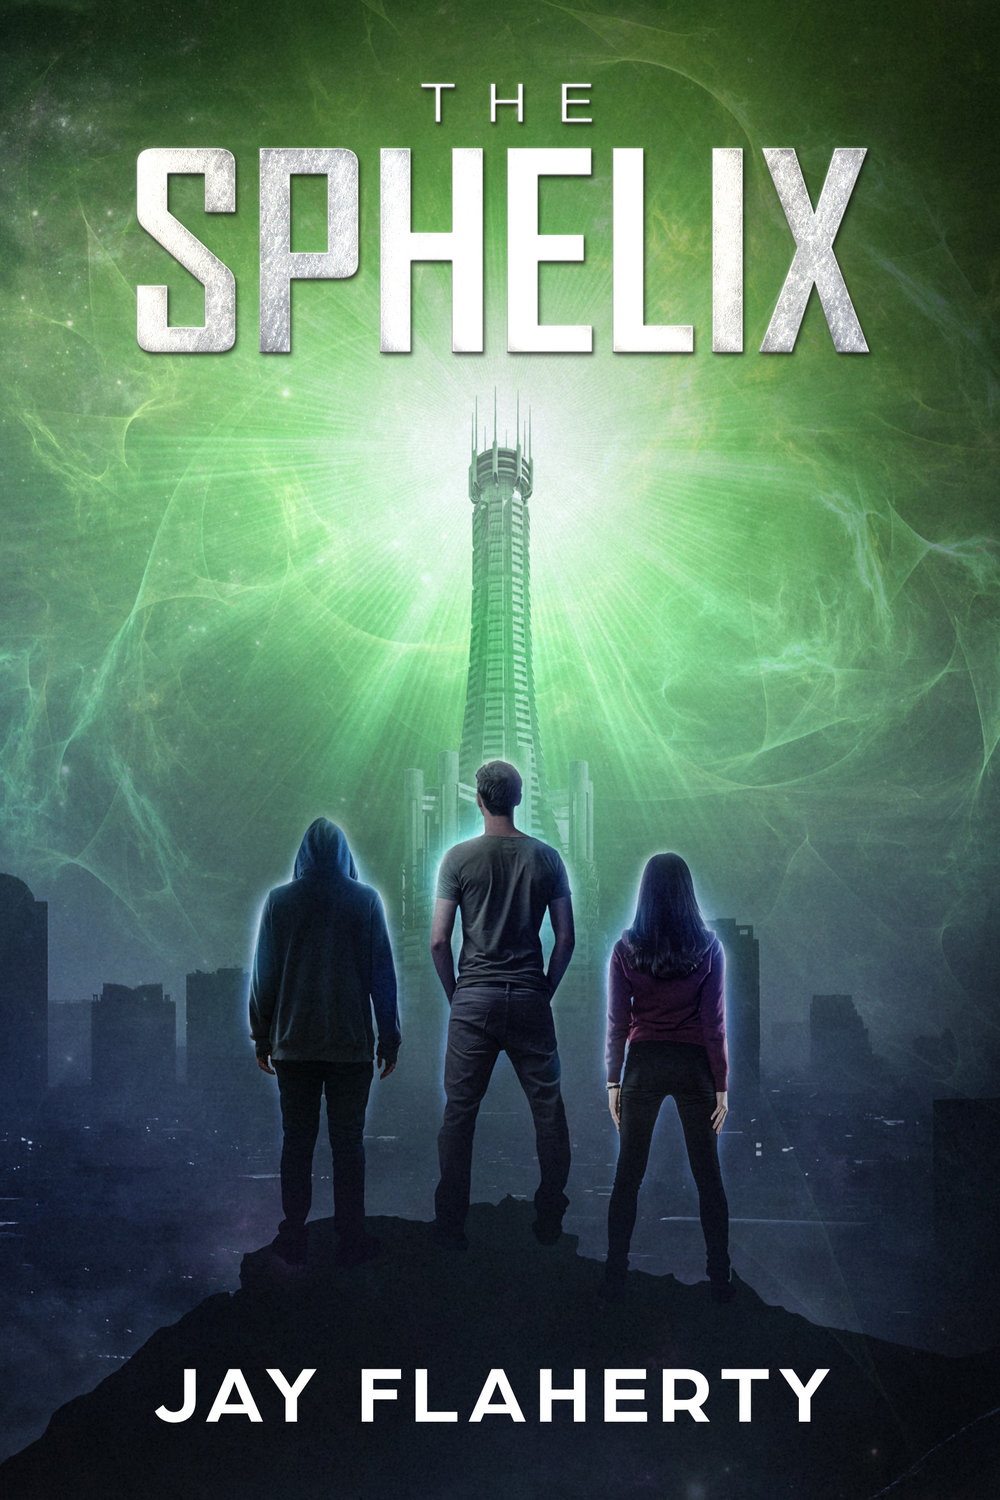 Sphelix Book Cover.jpg